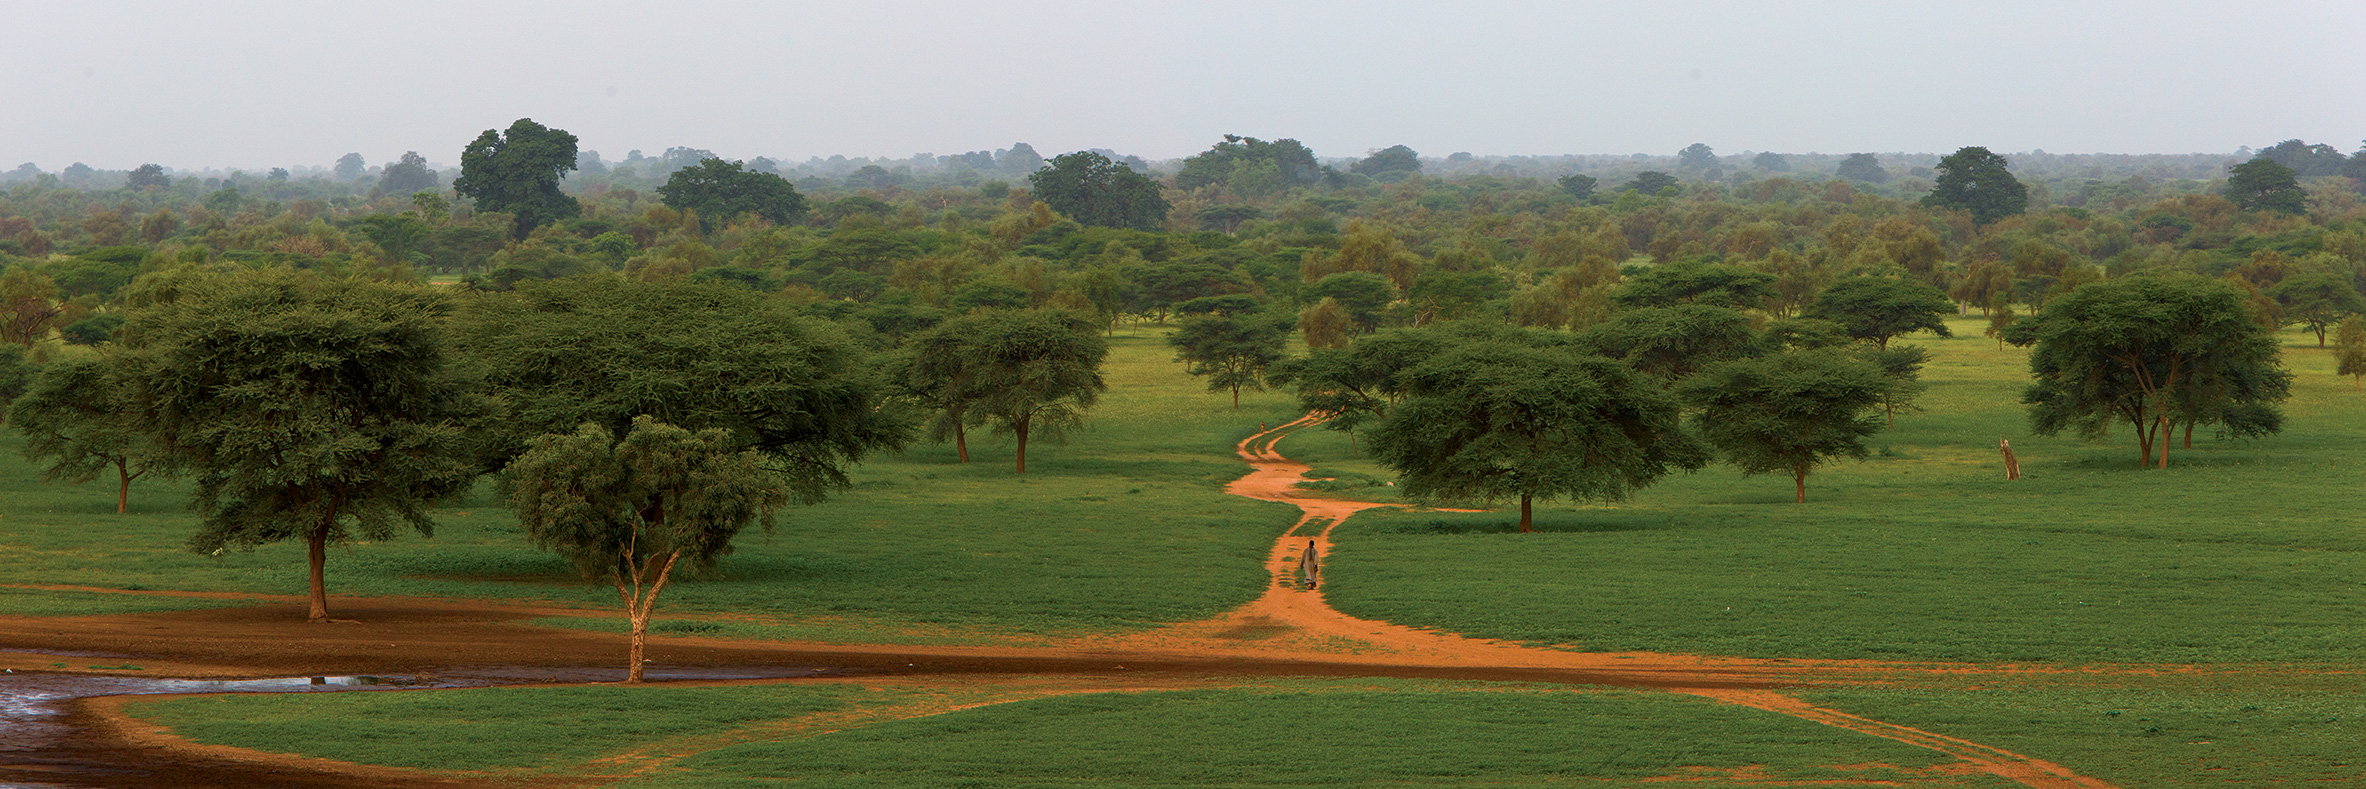 great green wall panorama